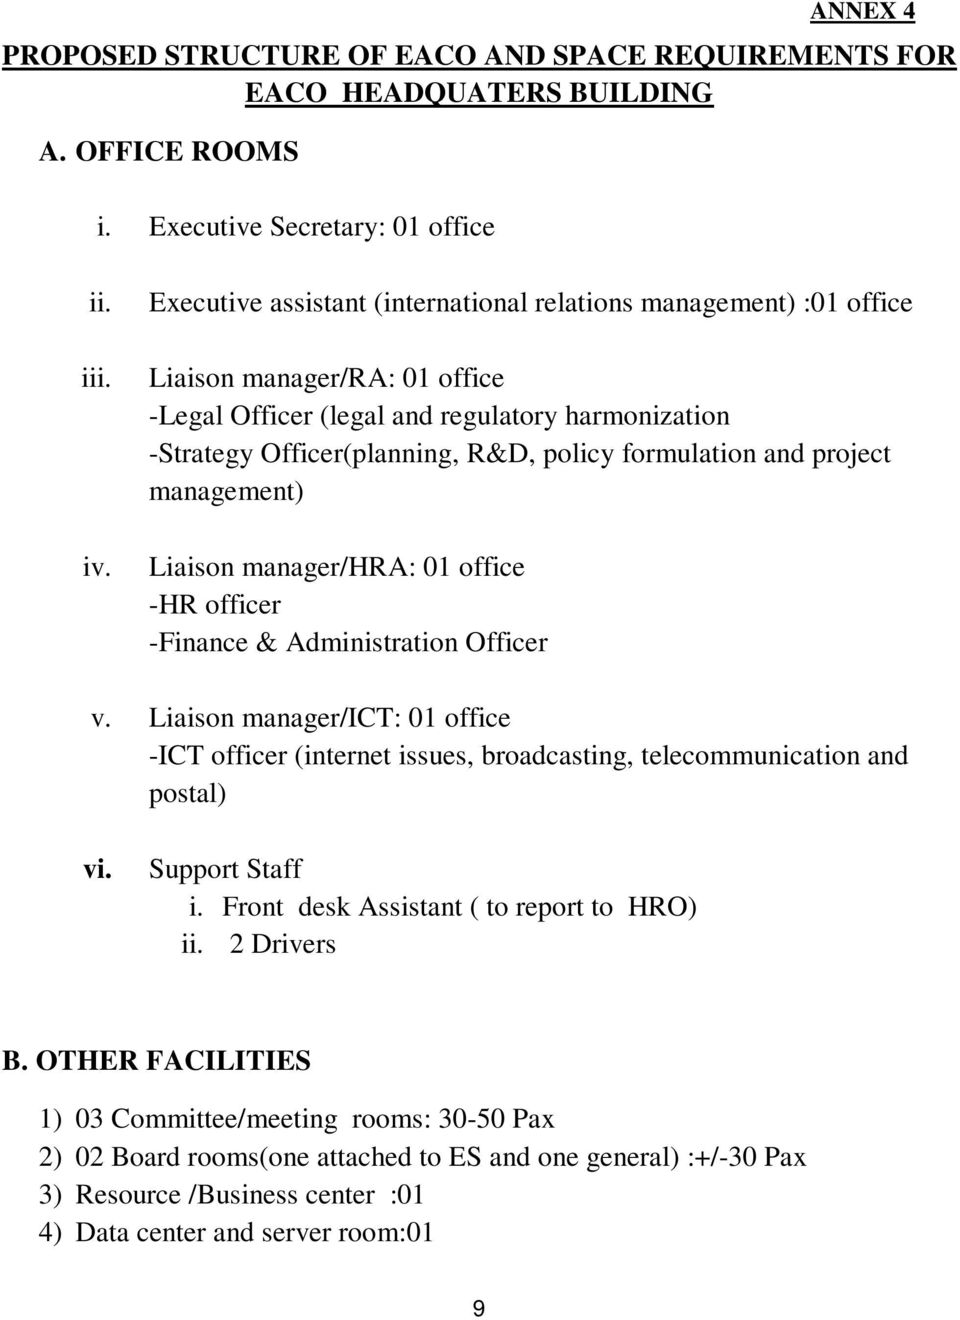 formulation and project management) Liaison manager/hra: 01 office -HR officer -Finance & Administration Officer v.